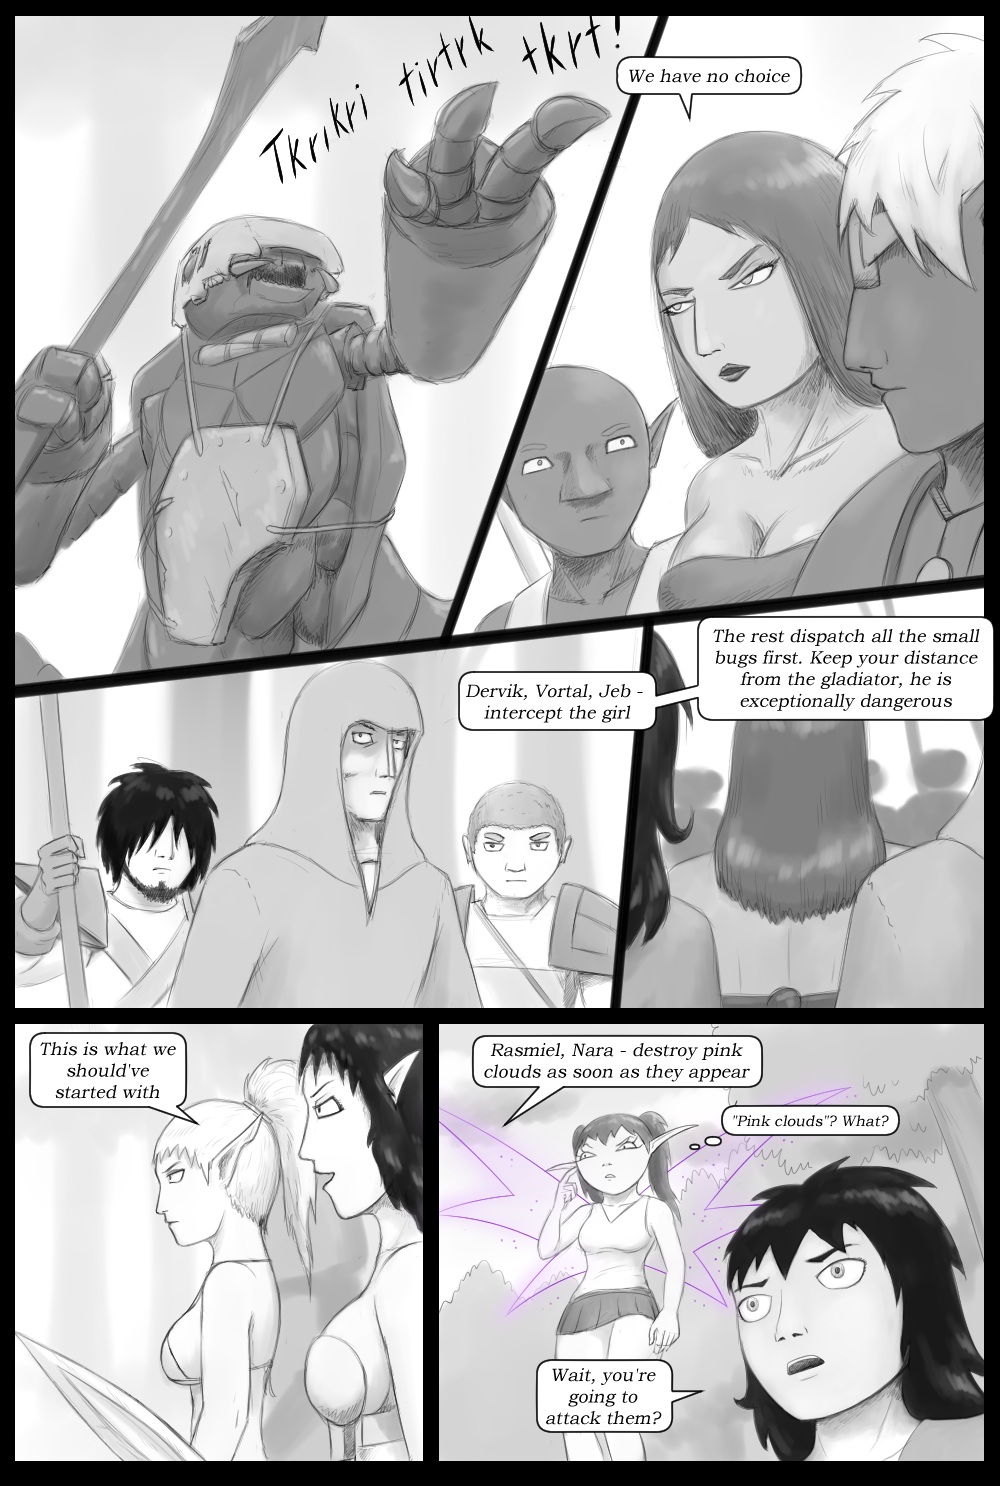 Page 84 - the Battle Plan